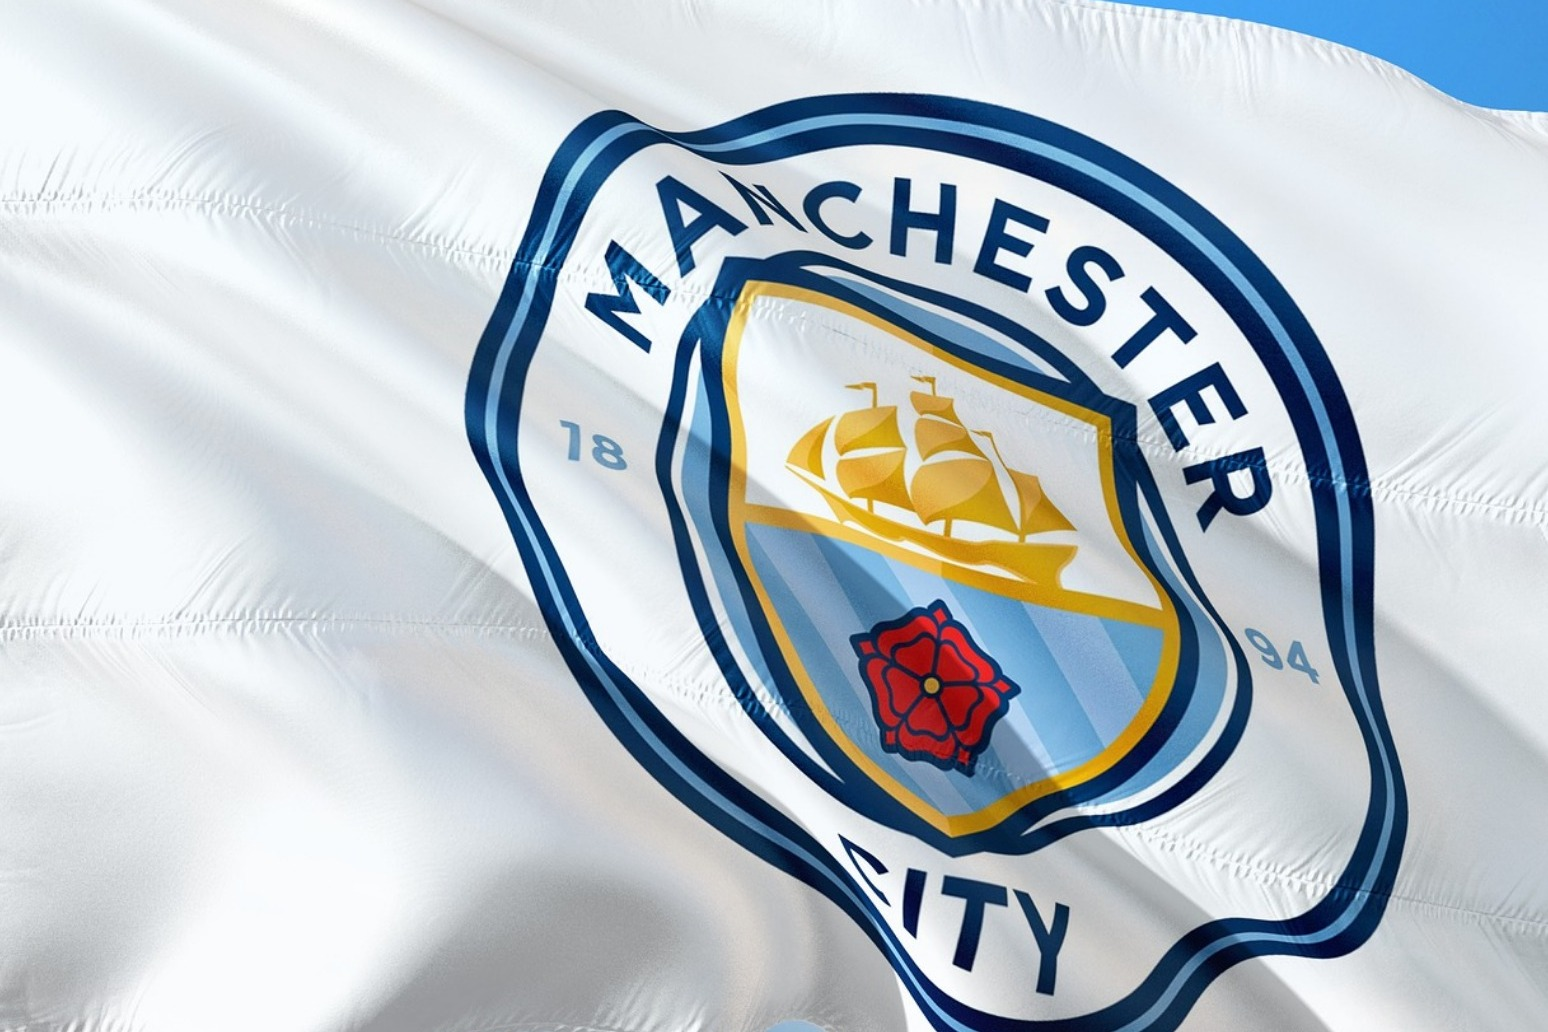 Manchester City to compensate victims of child sexual abuse